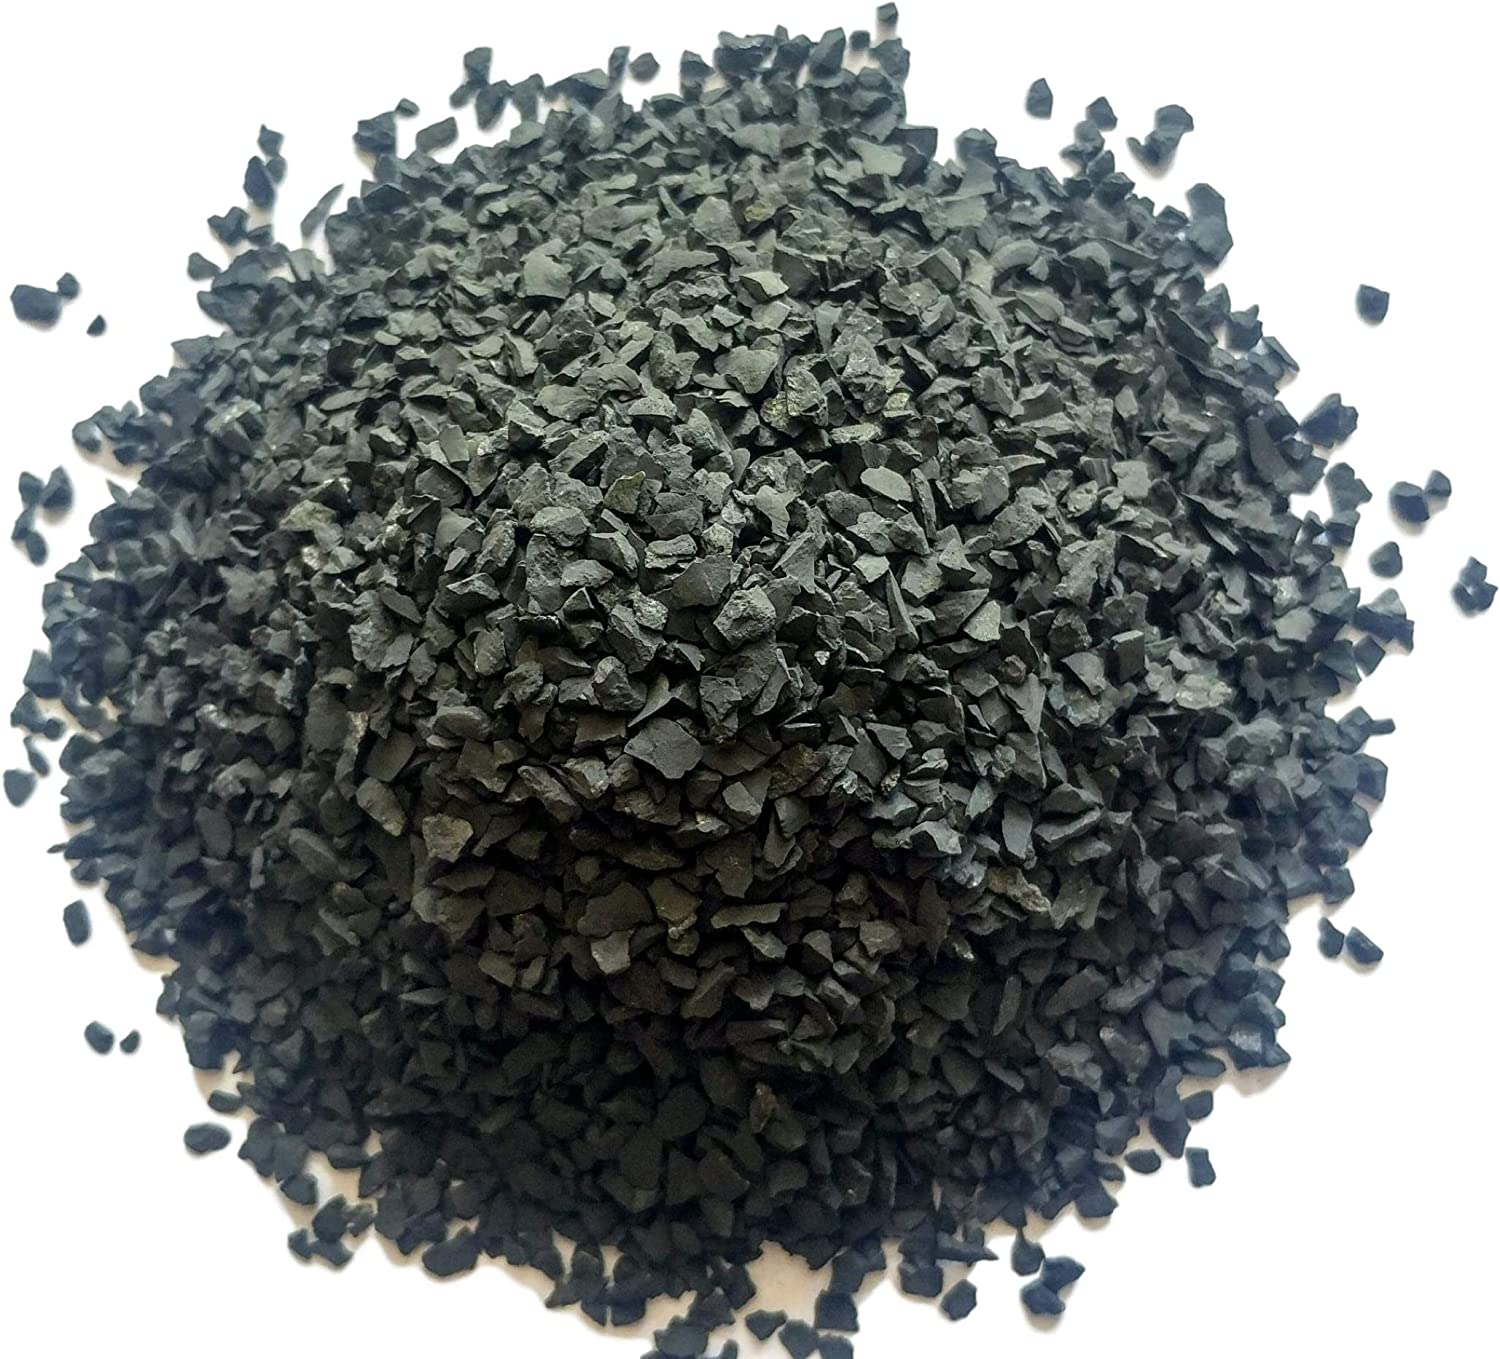 Fees free!! Black Shungite Crushed free shipping Chips - Large Russi Authentic 100% Sand